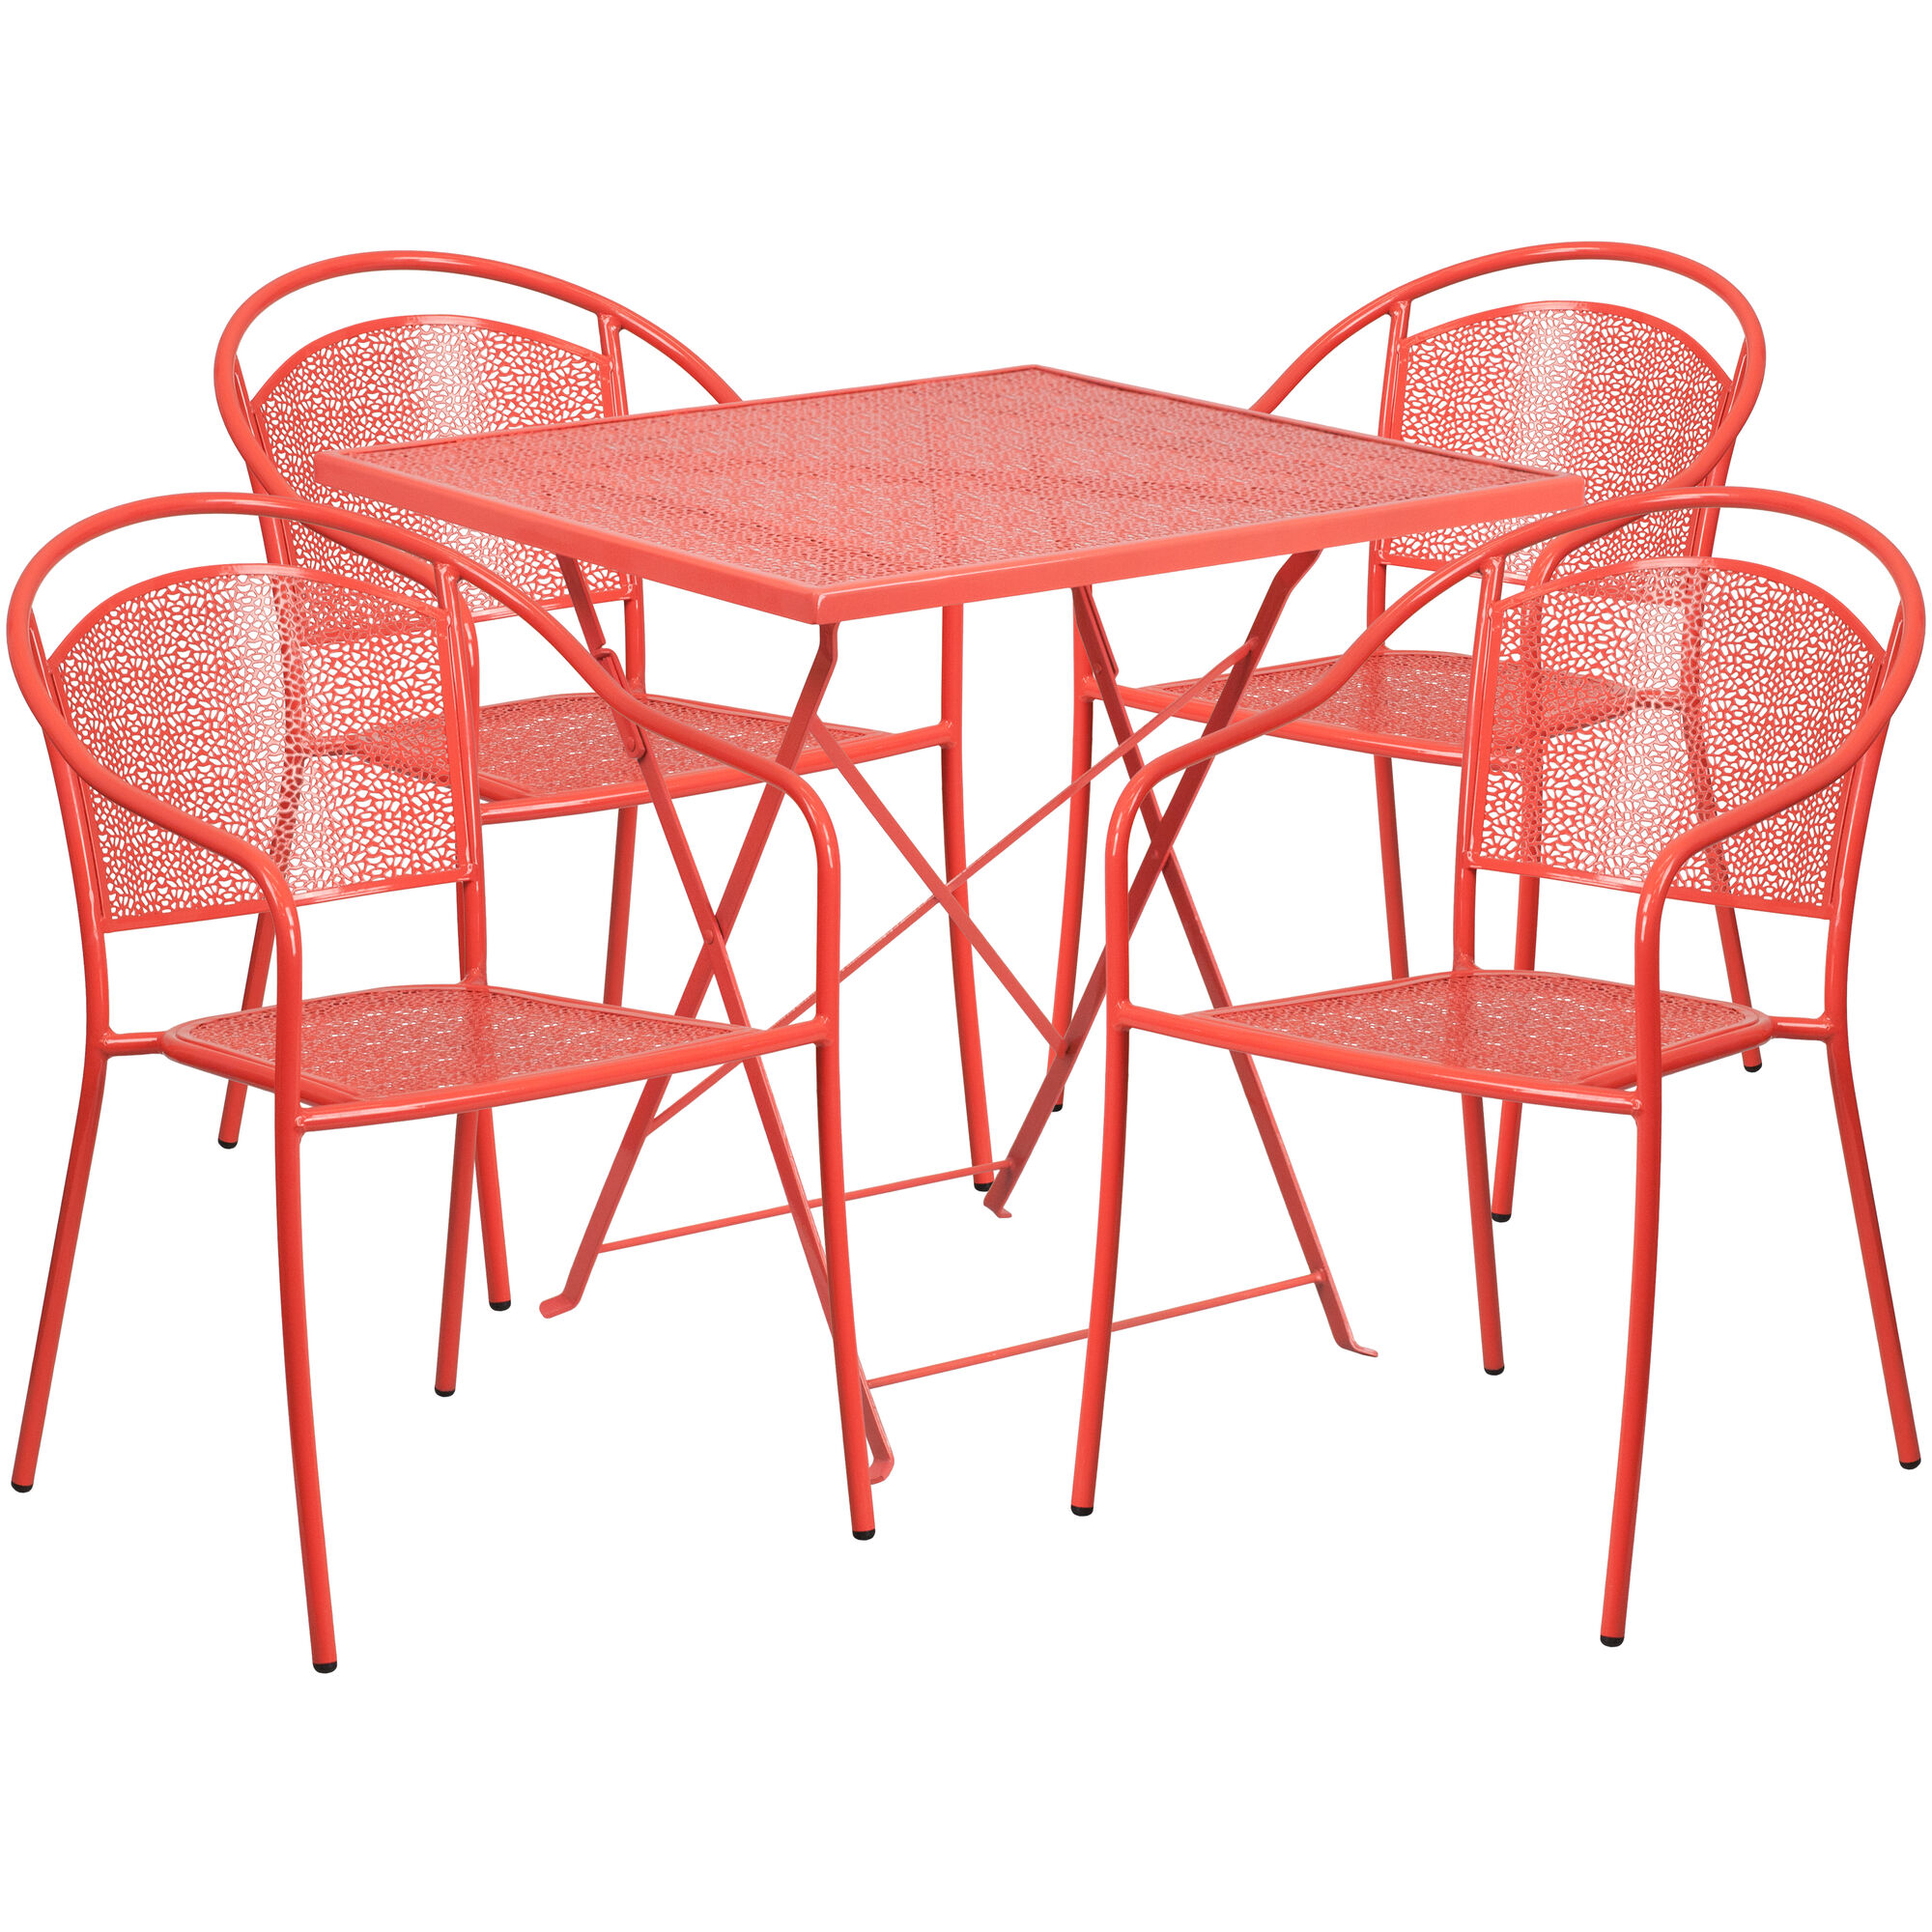 Peachy Commercial Grade 28 Square Coral Indoor Outdoor Steel Folding Patio Table Set With 4 Round Back Chairs Gmtry Best Dining Table And Chair Ideas Images Gmtryco